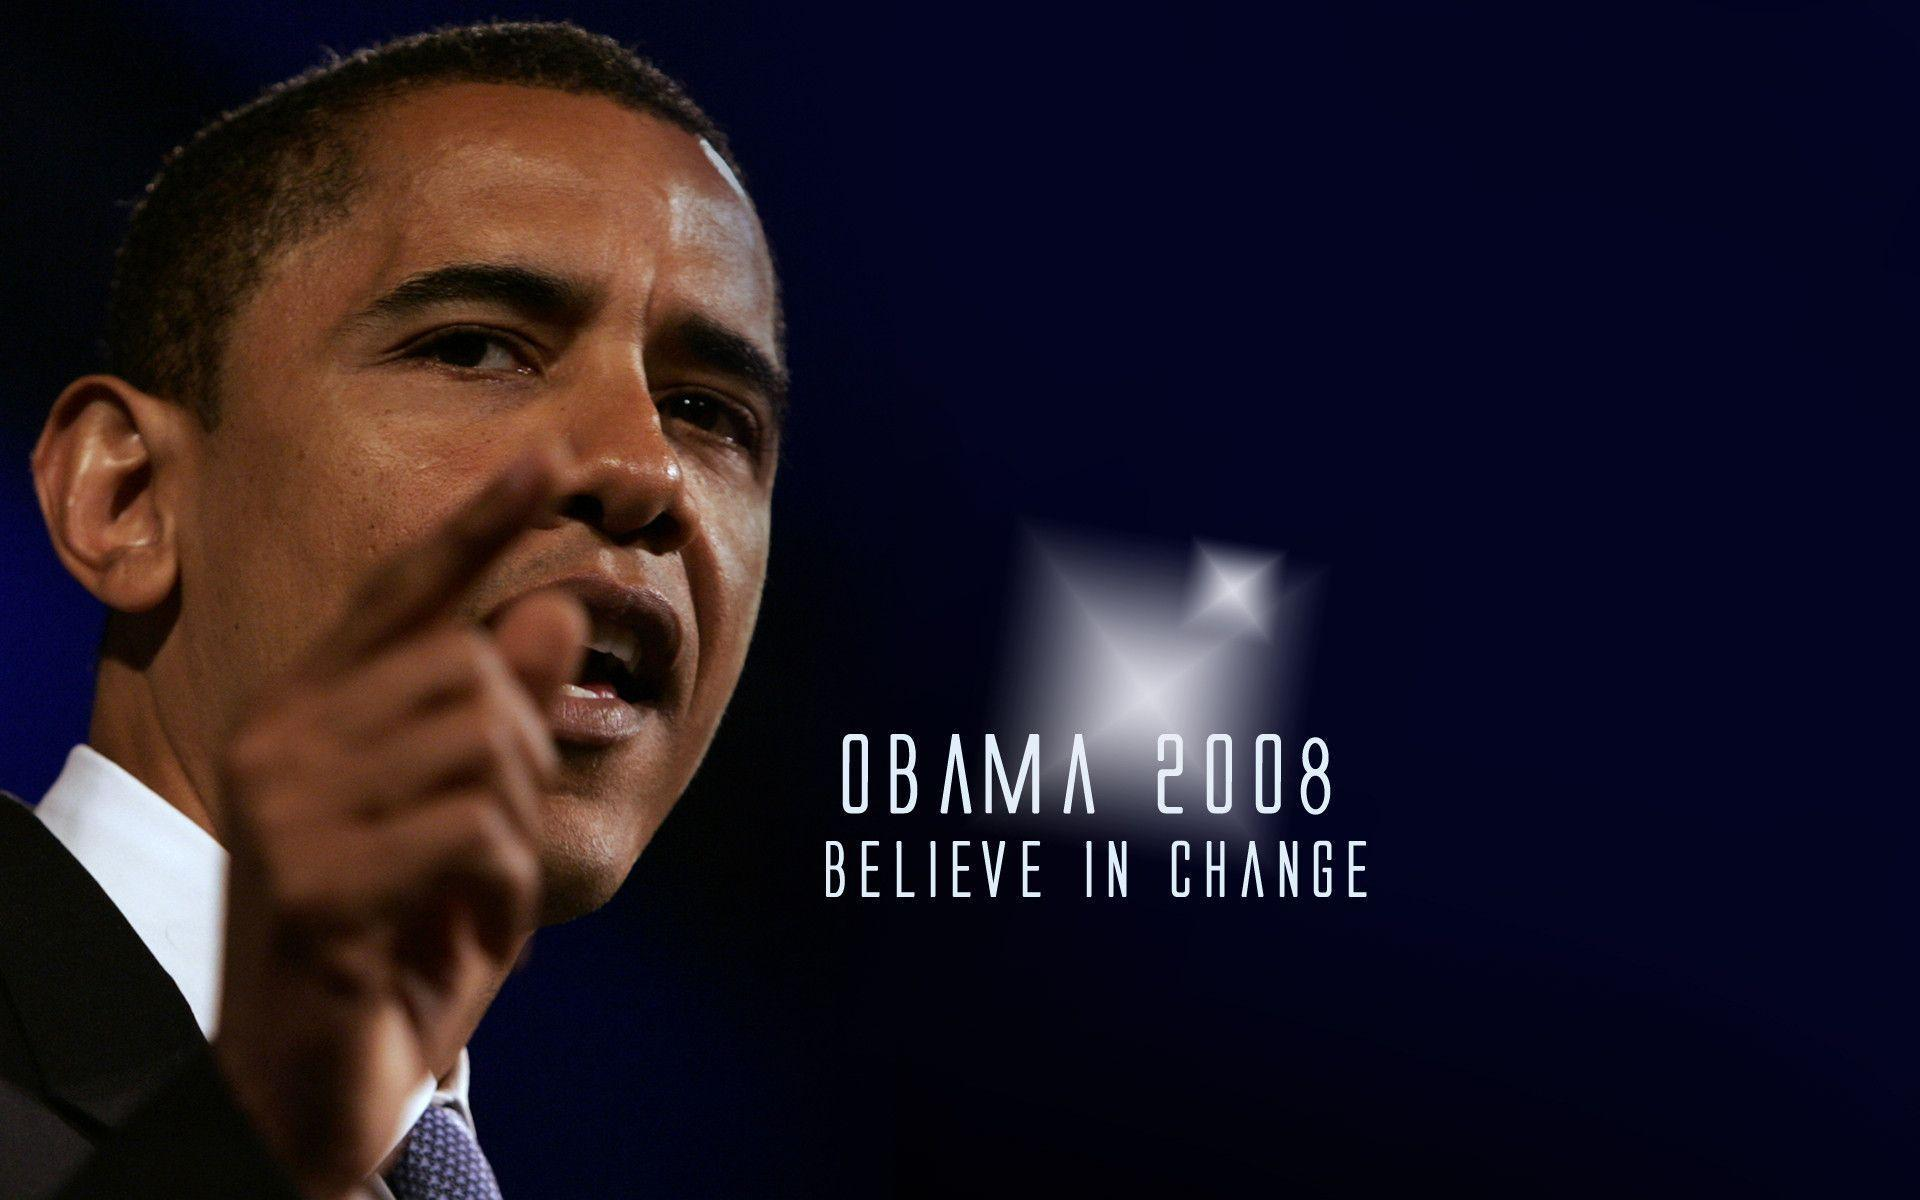 Obama Wallpapers 1920x1200